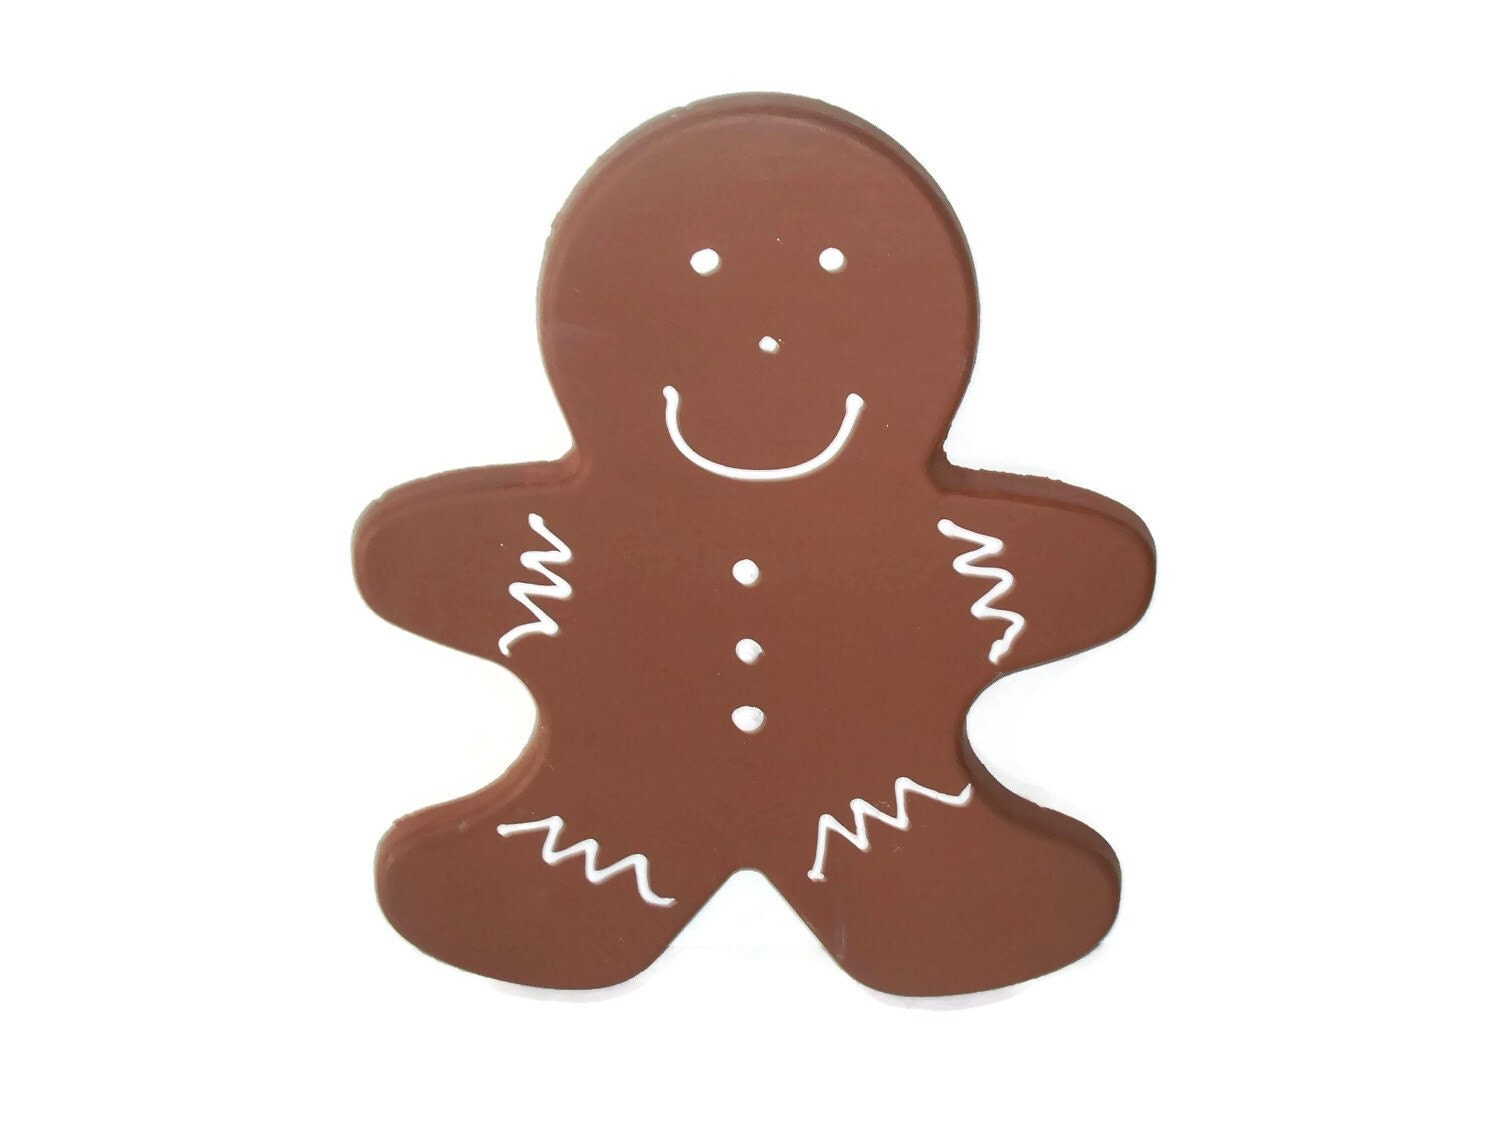 Giant Fake Gingerbread Man Cookie for Christmas Photo Props, Holiday Decorations and Display, Secret Santa Gifts